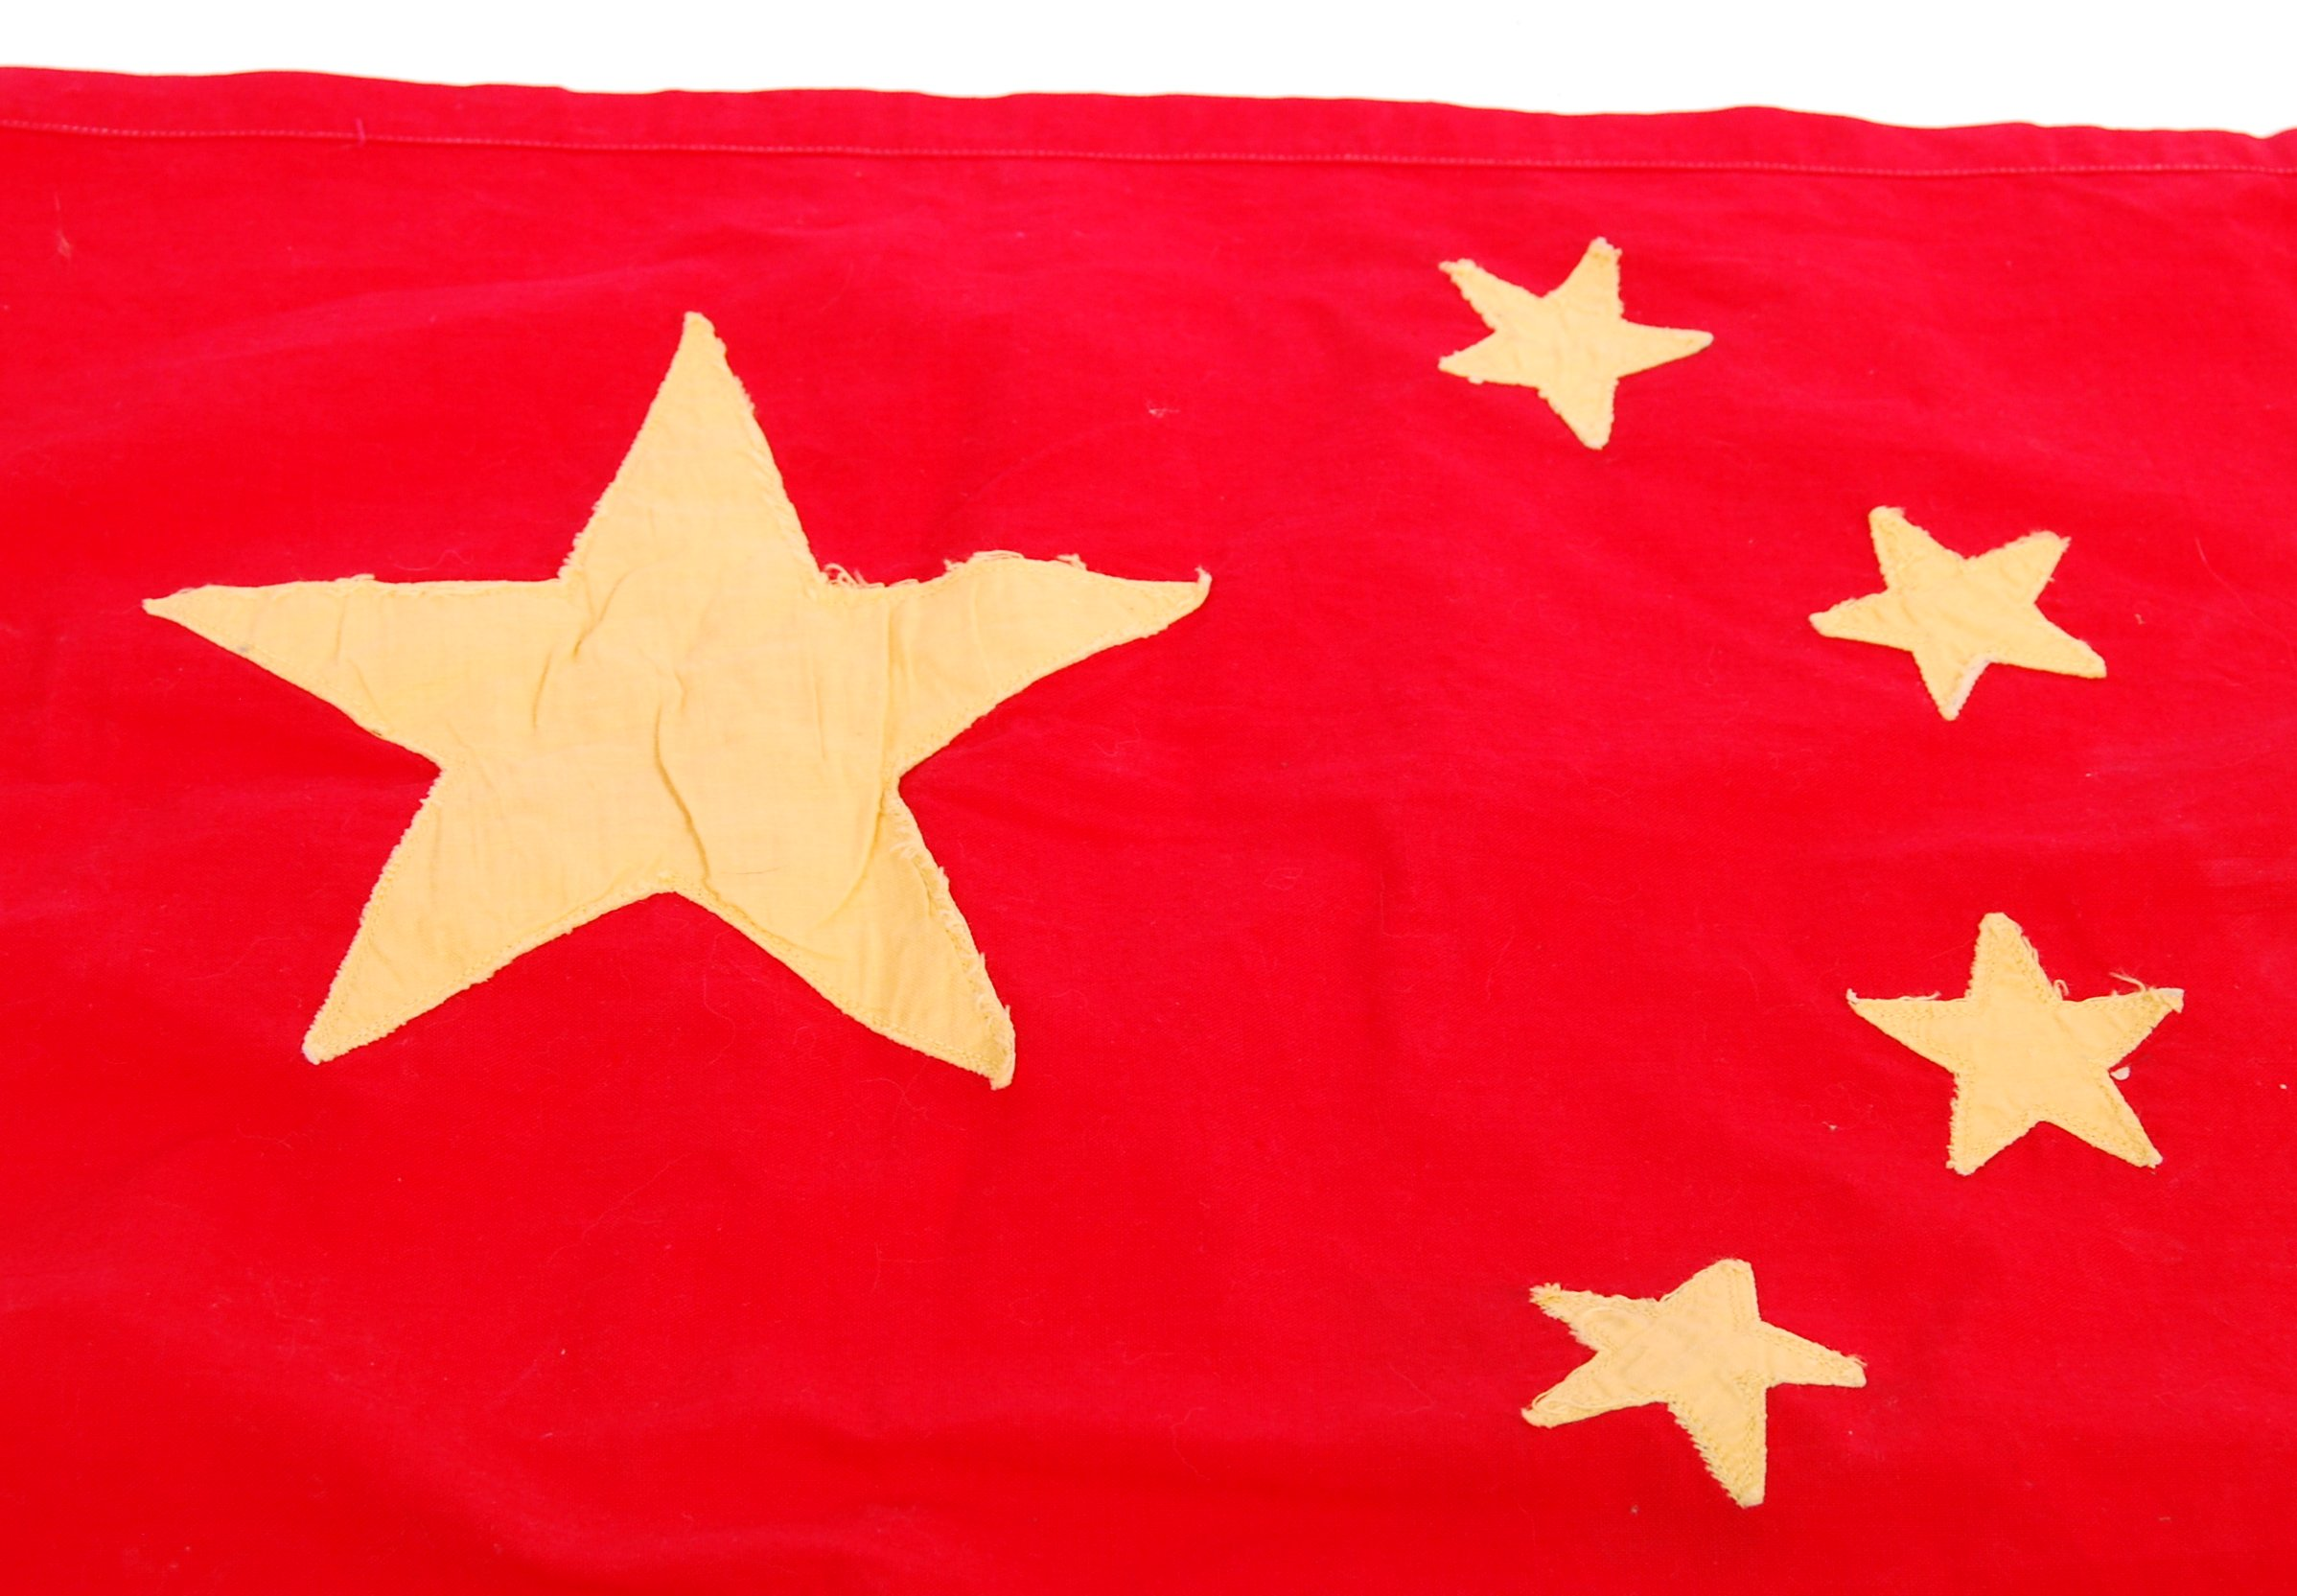 VINTAGE MID-CENTURY 1960'S FLAG OF CHINA - Image 2 of 3